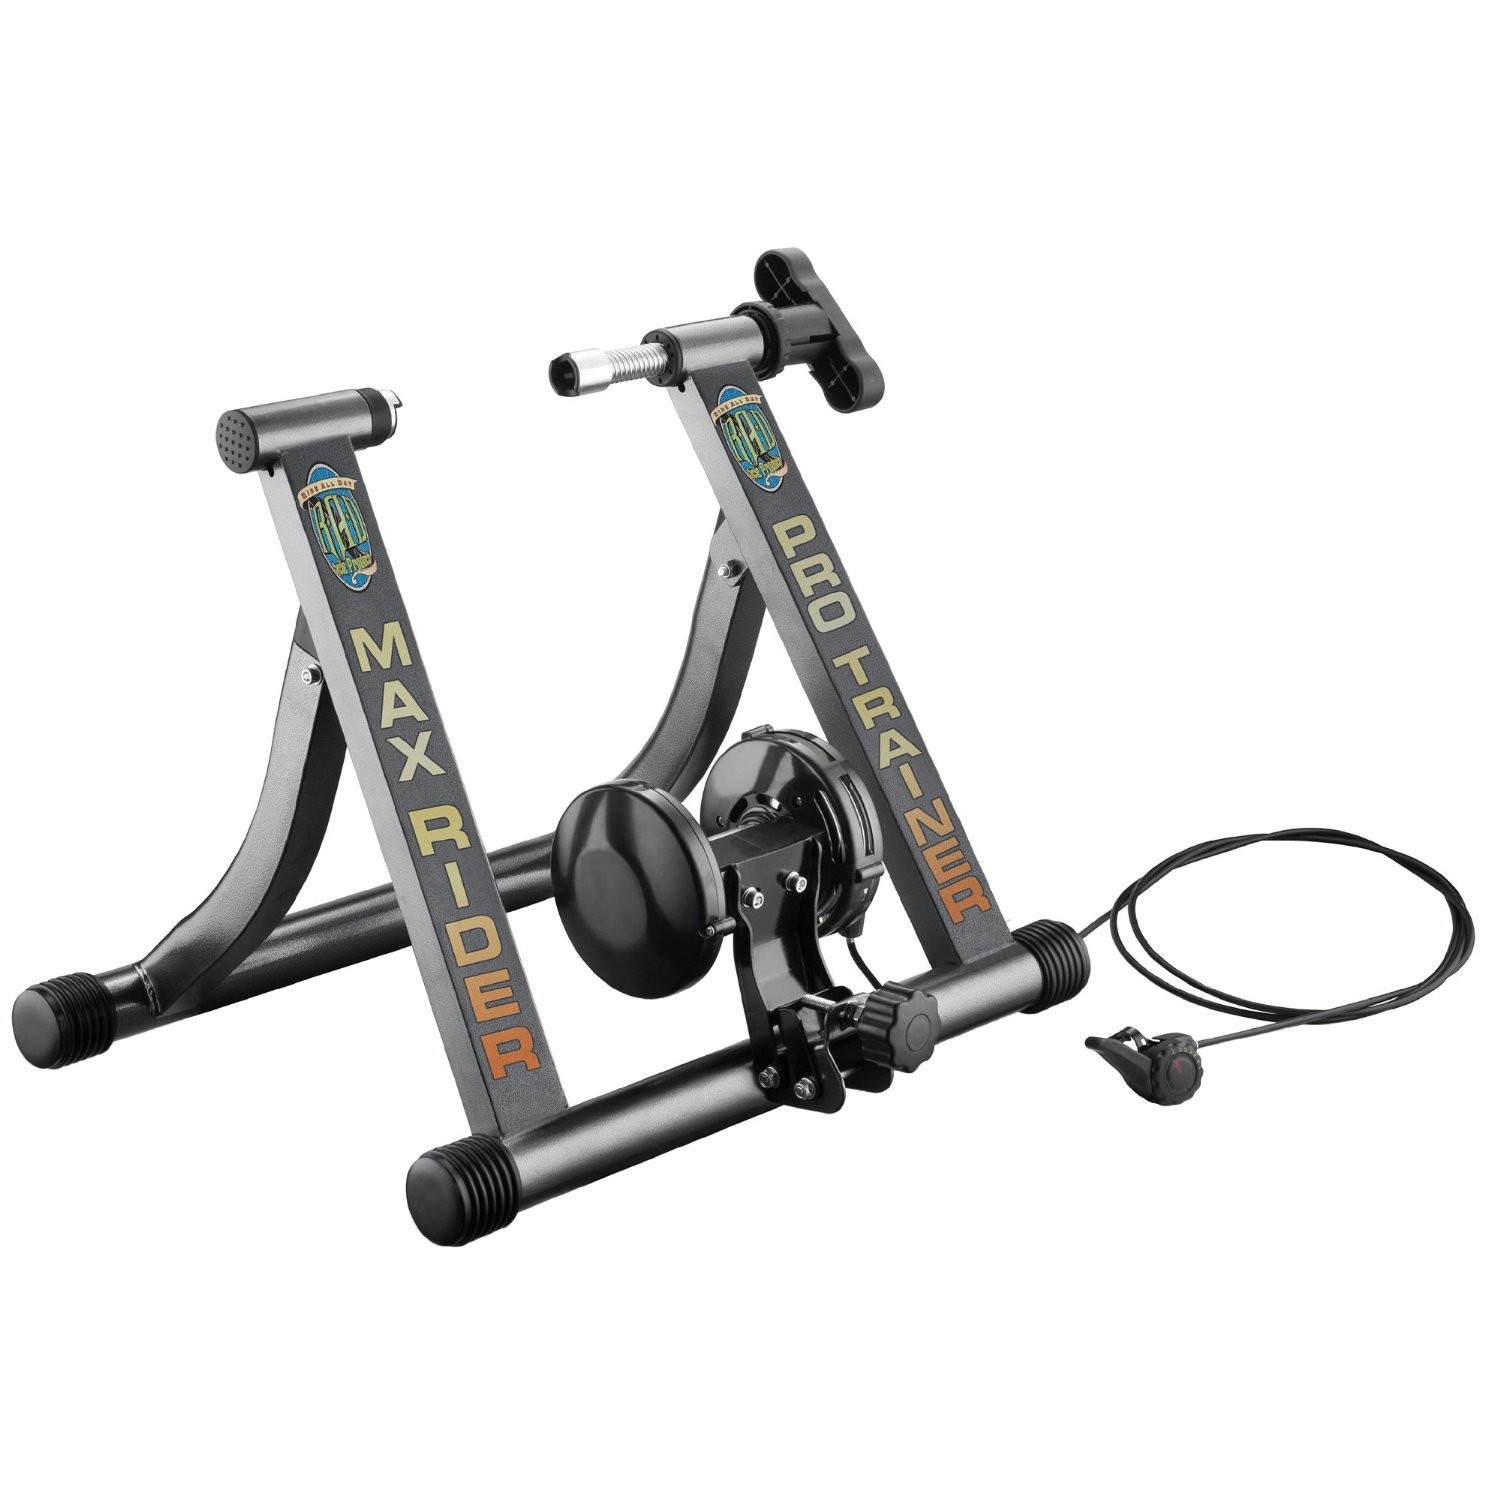 RAD Cycle Products Indoor Portable Magnetic Workout Bicycle Trainer